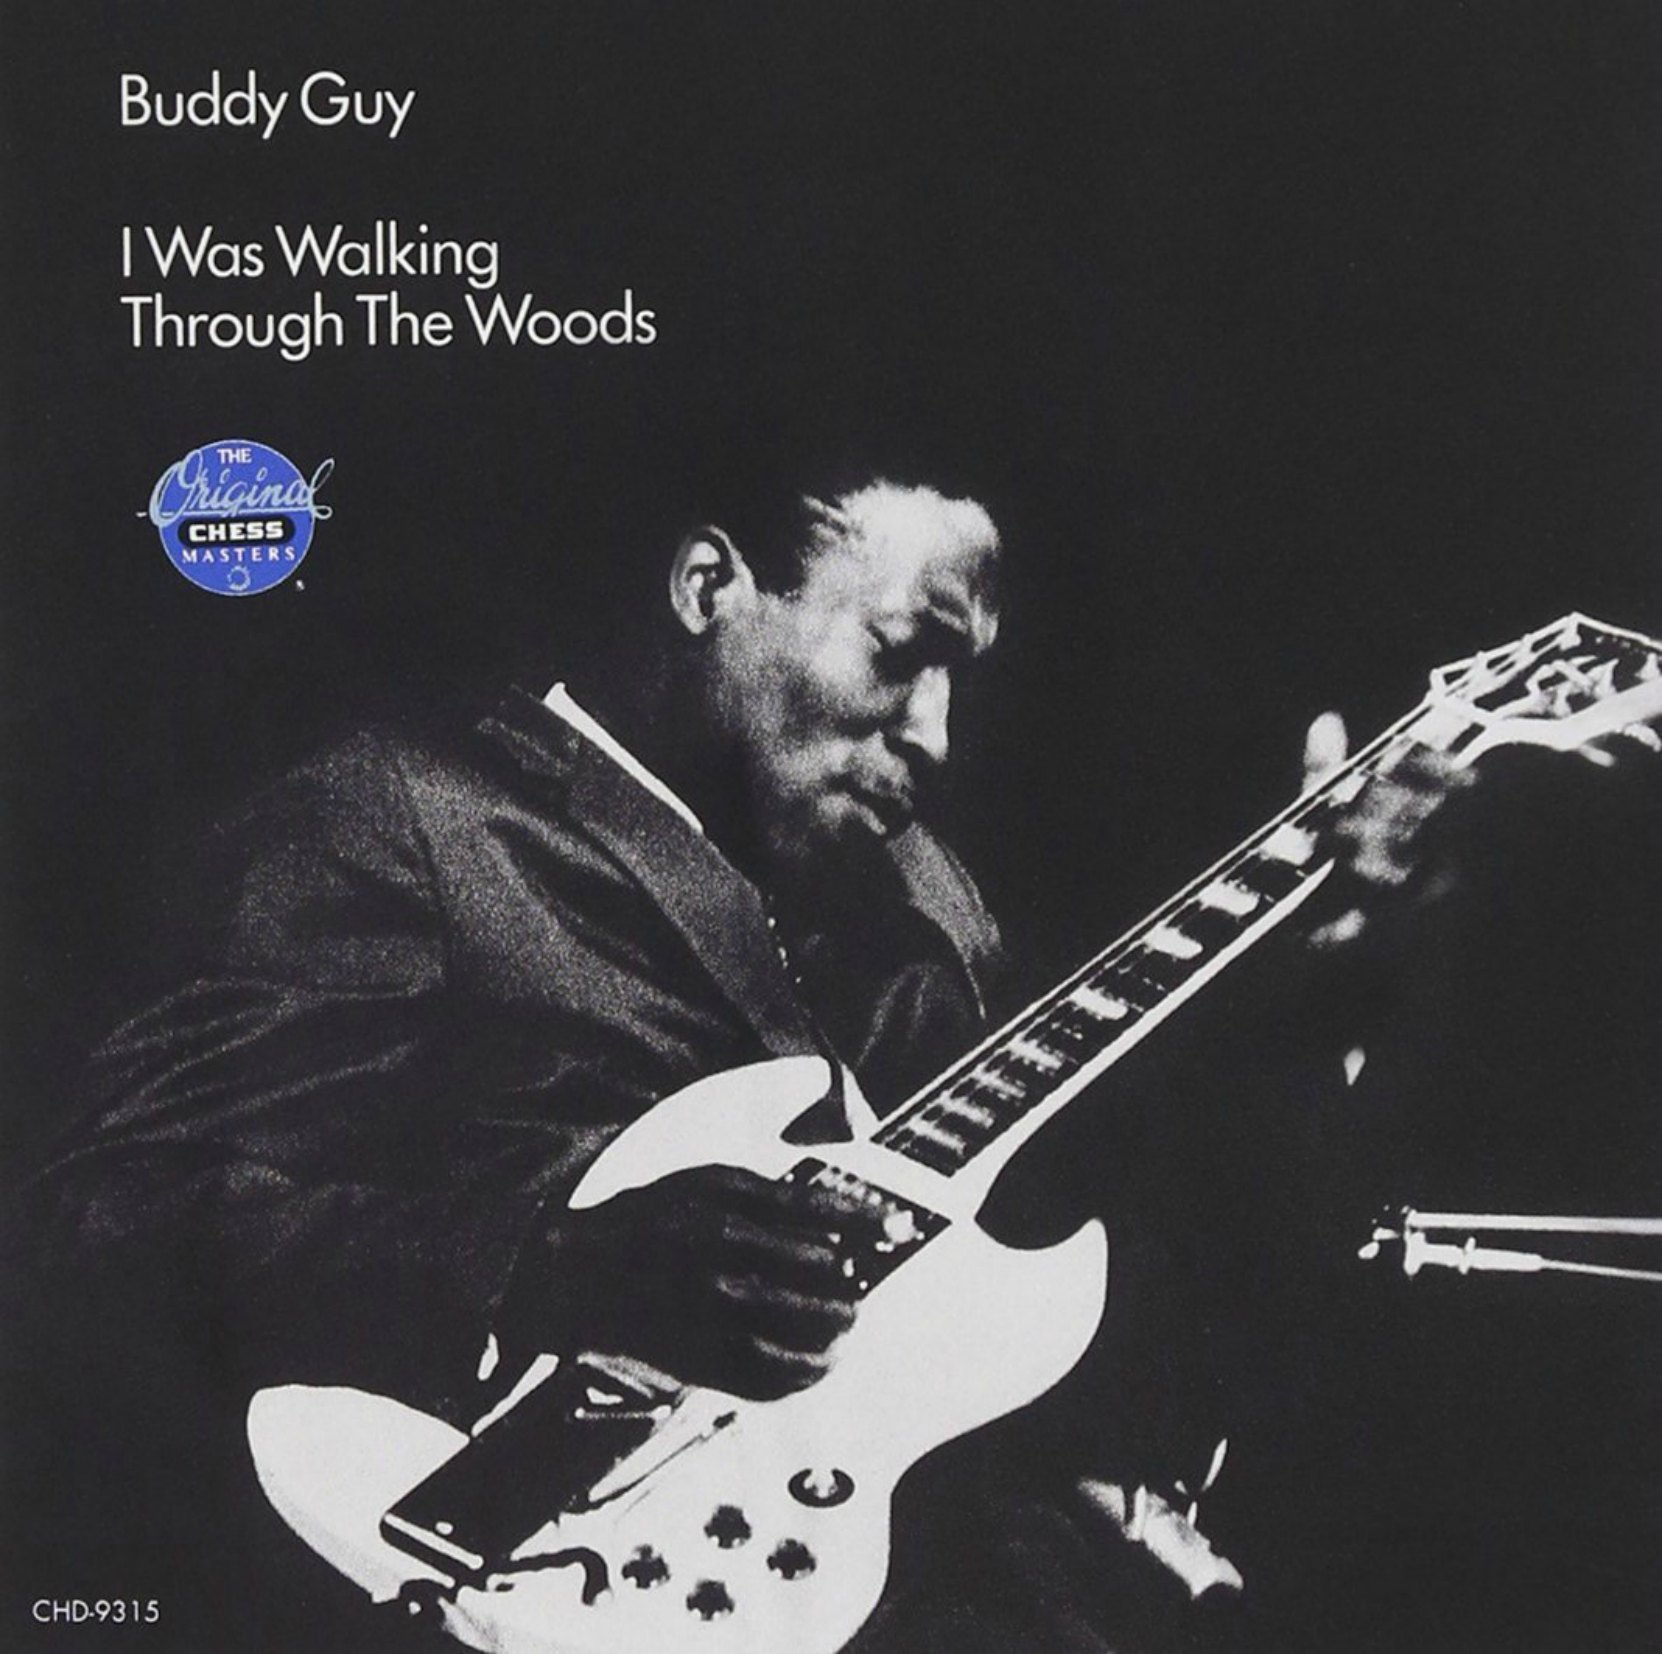 Album cover, I Was Walking Through The Woods, by Buddy Guy. Released in 1970 on Chess Records.